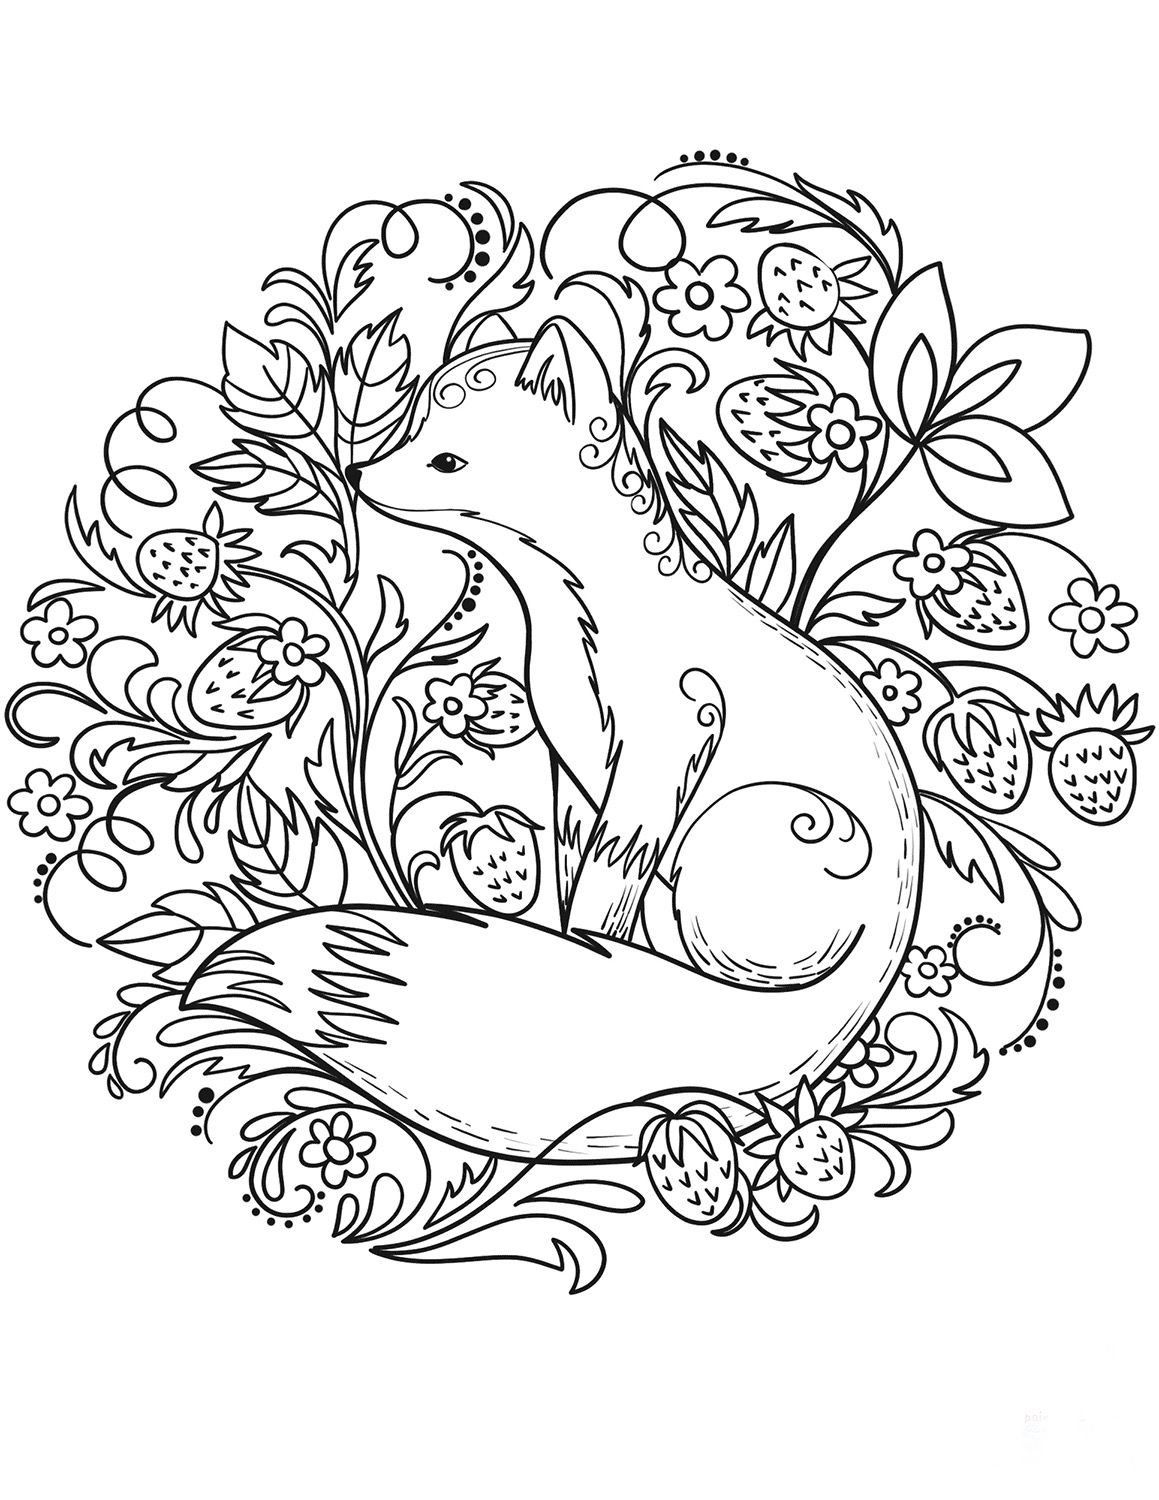 Pin By Megan Dawson On Sketches Drawings Coloring Fox